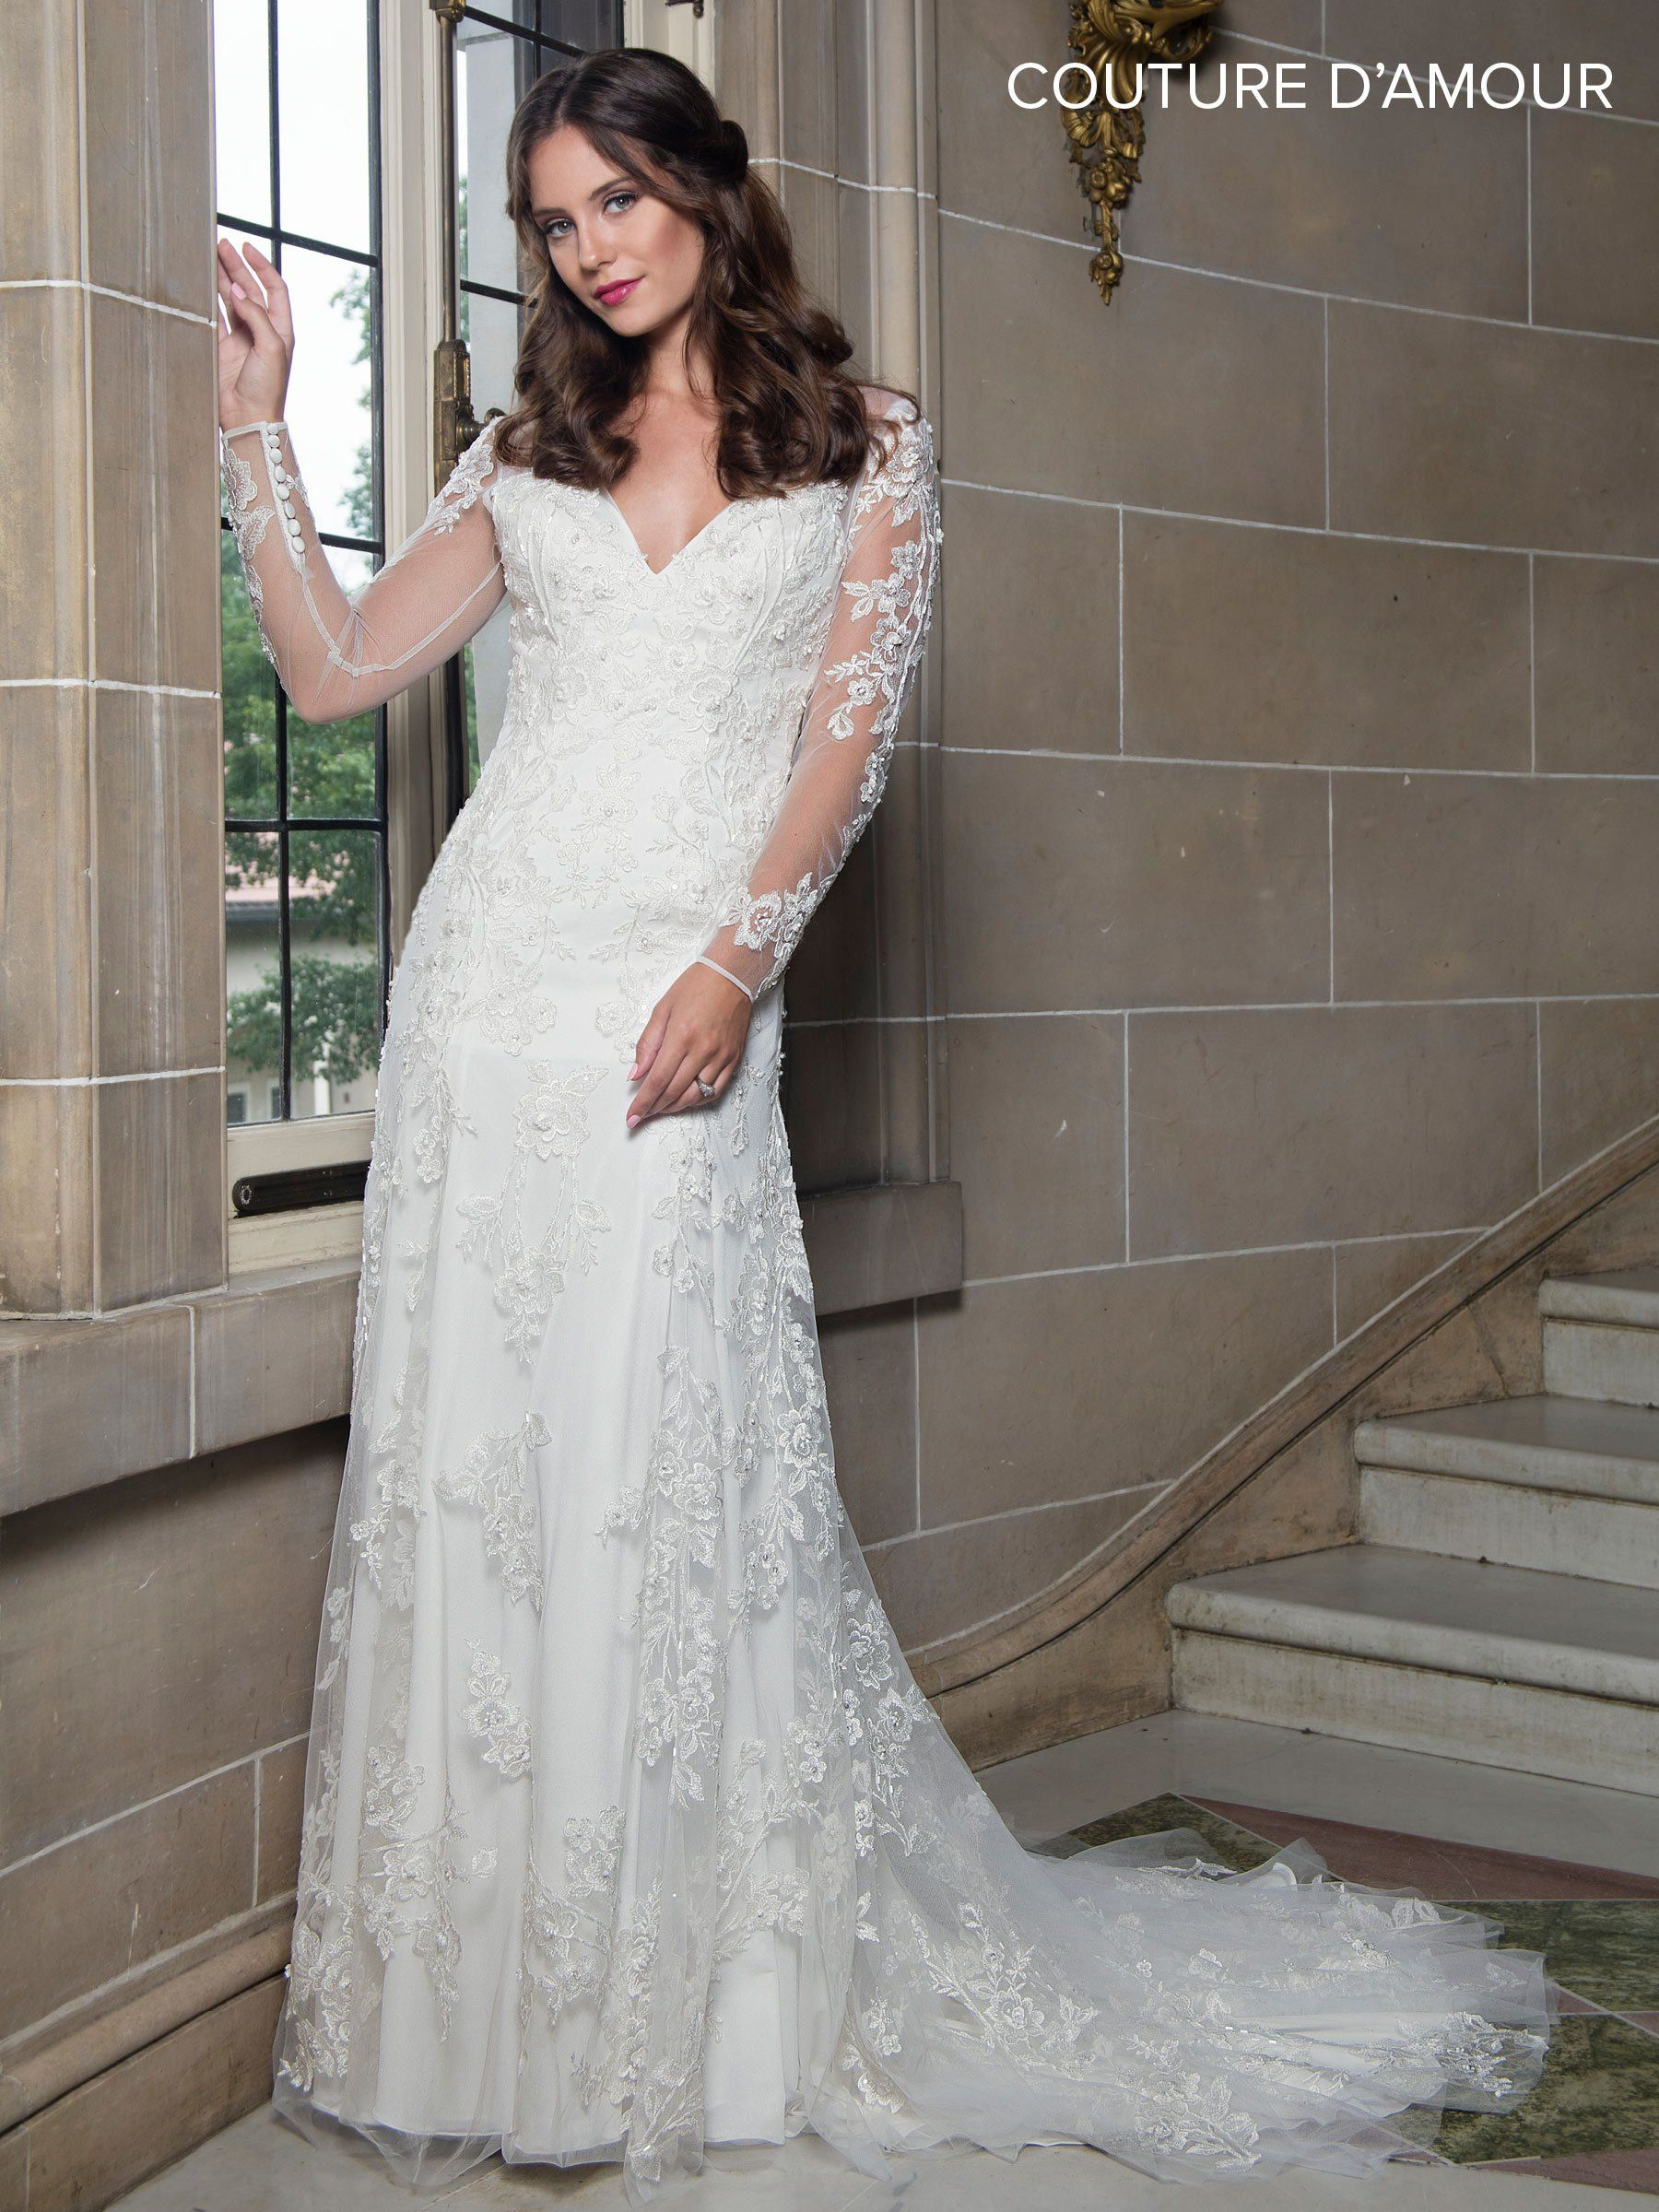 Long sleeve wedding dress with train by maryus bridal mb